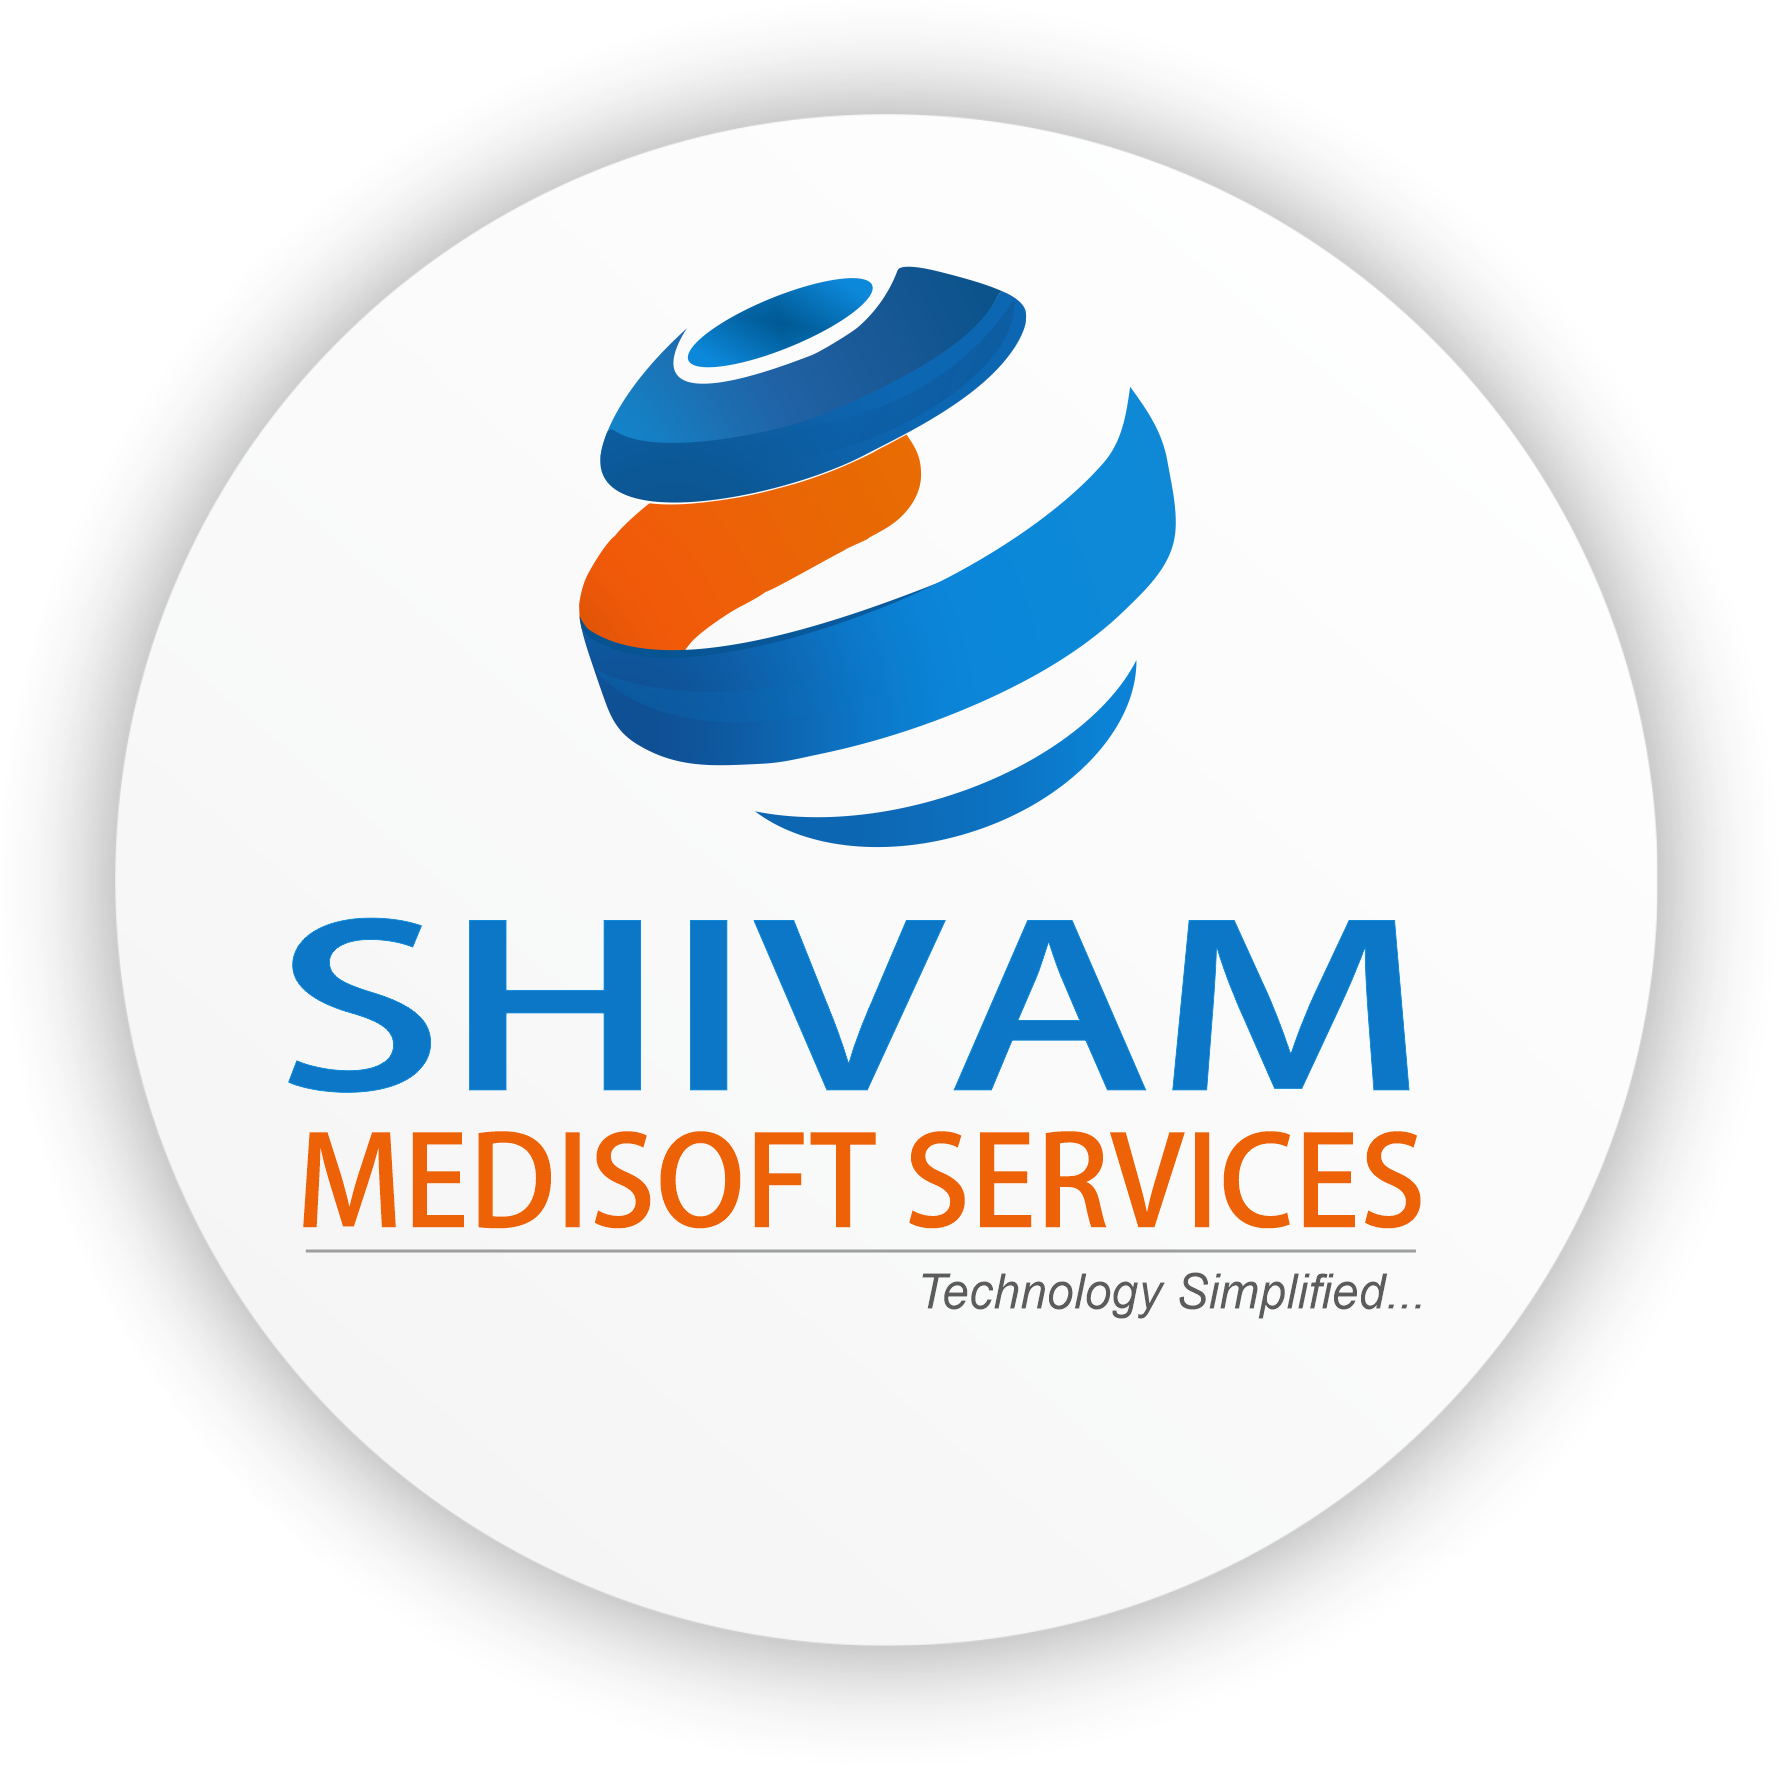 Shivam Medisoft Services Pvt Ltd